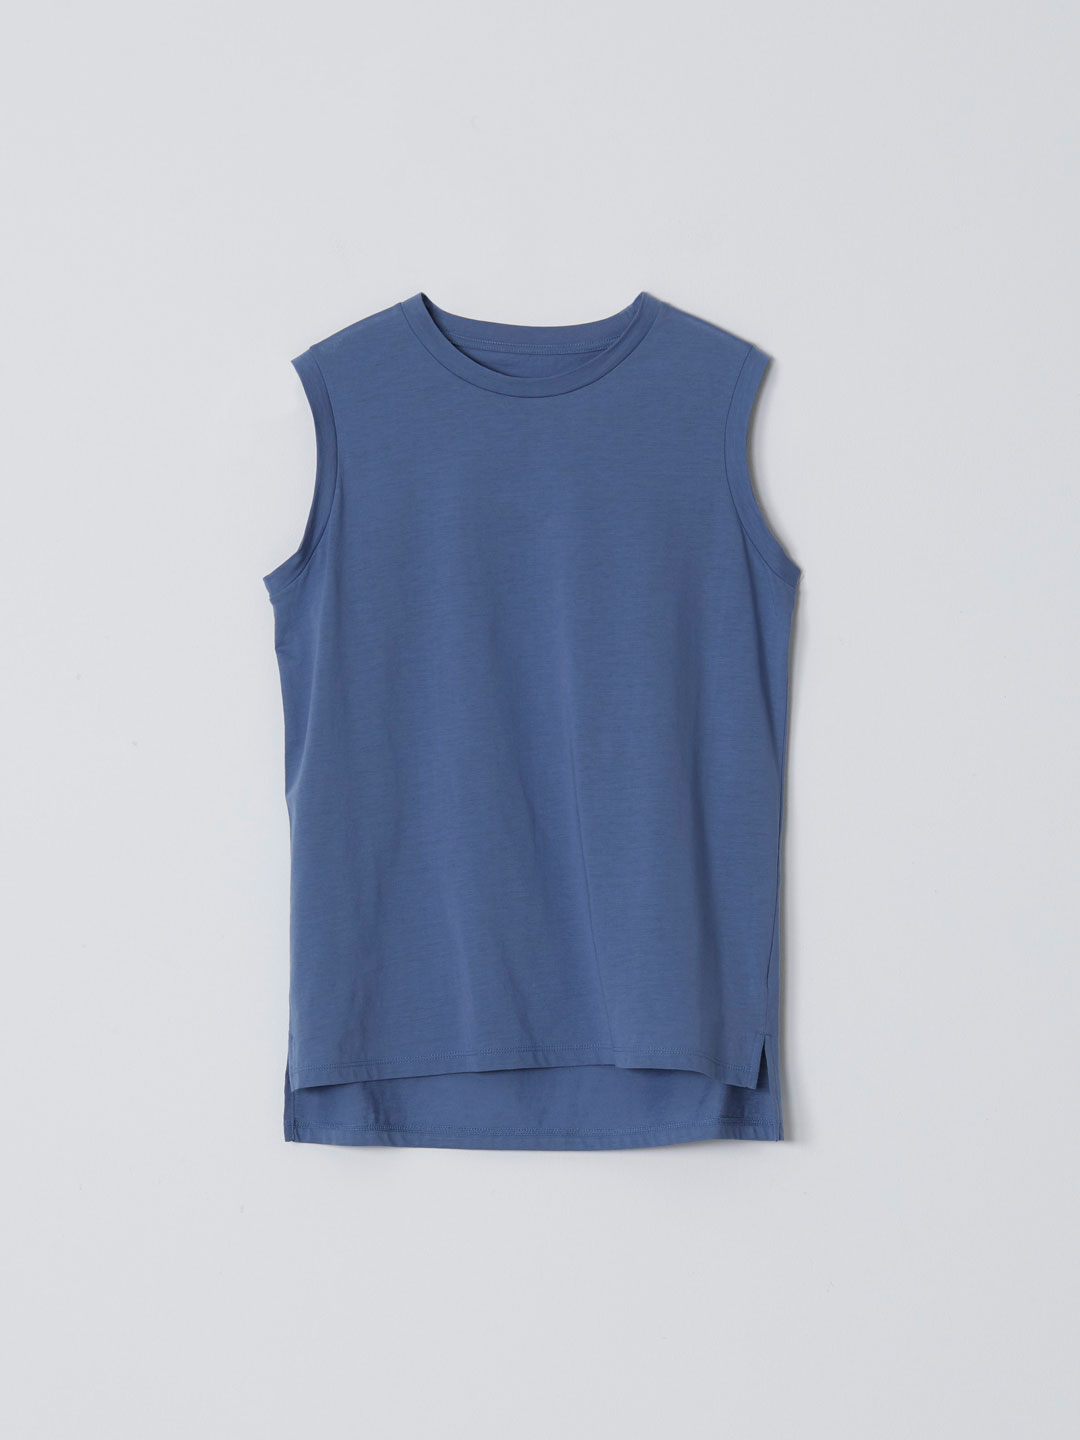 No 0236  High Gauge Cotton Sleeveless Tee - Sax